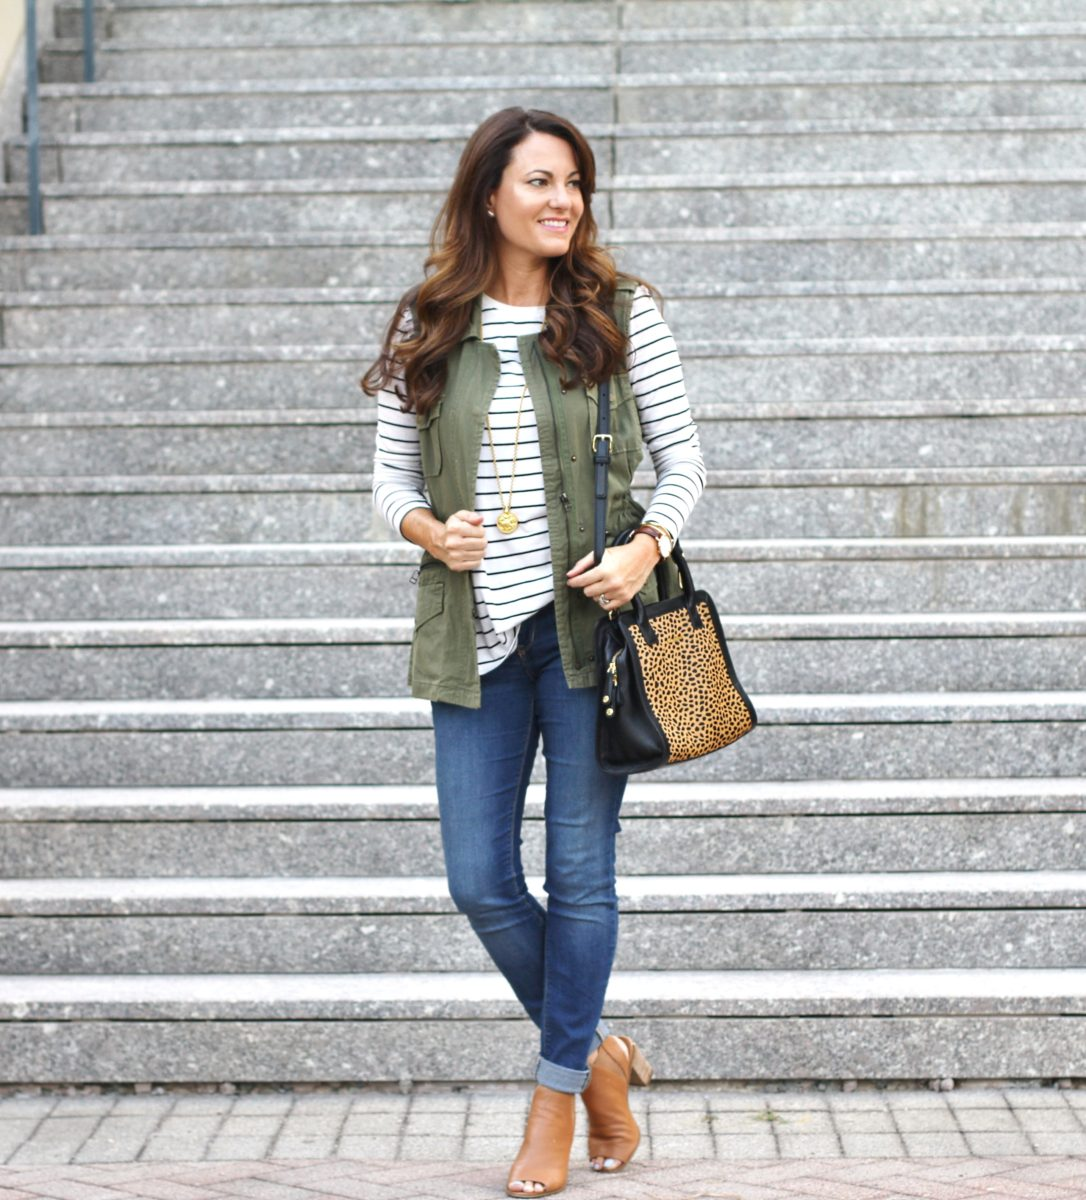 Cute Military Vest Outfit. Perfect For Transitioning Into Fall